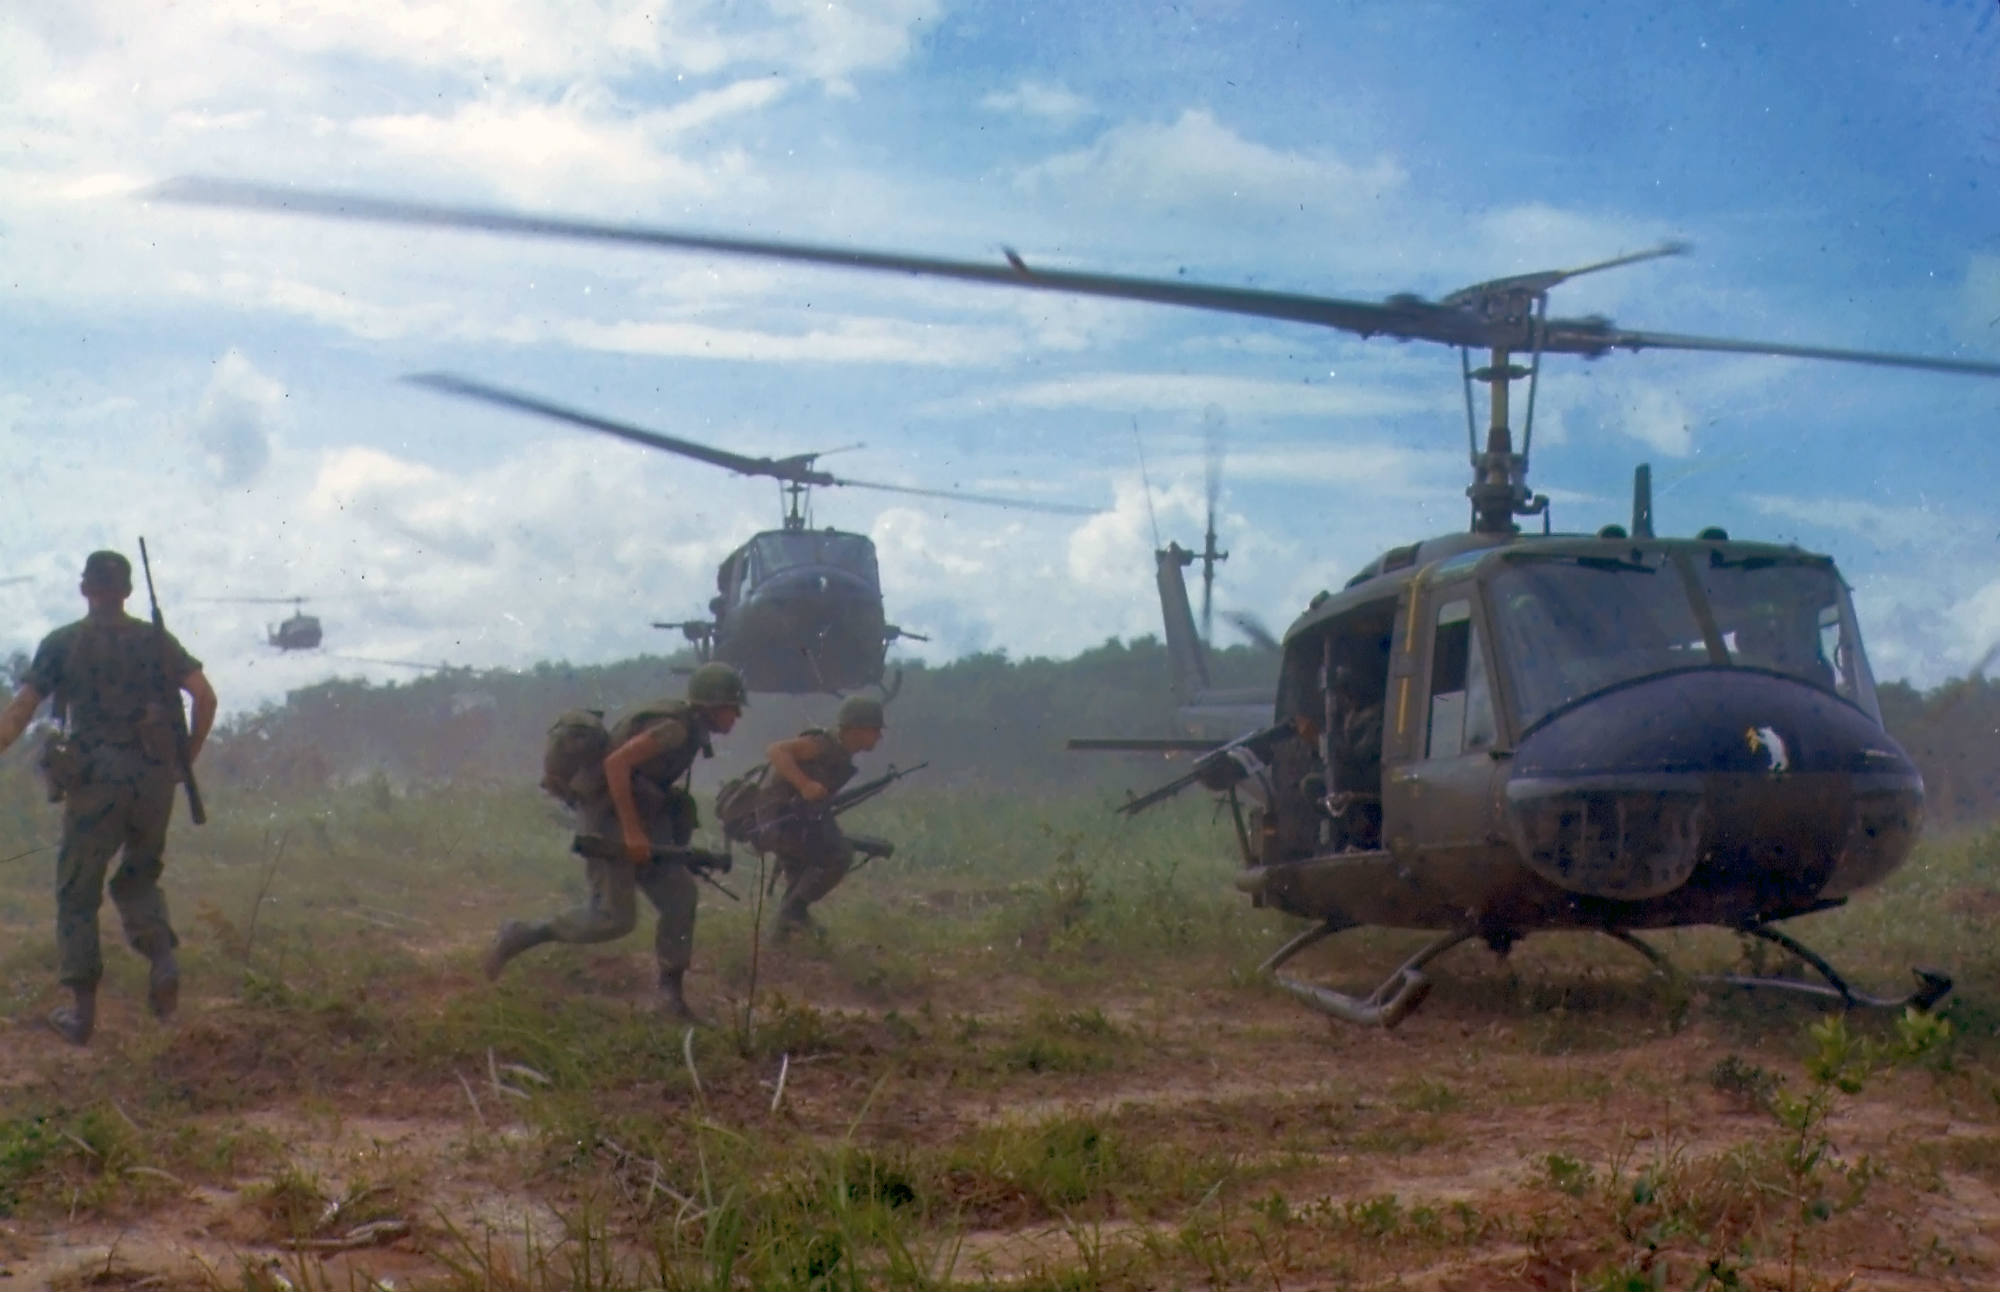 UH 1D helicopters in Vietnam 1966 image